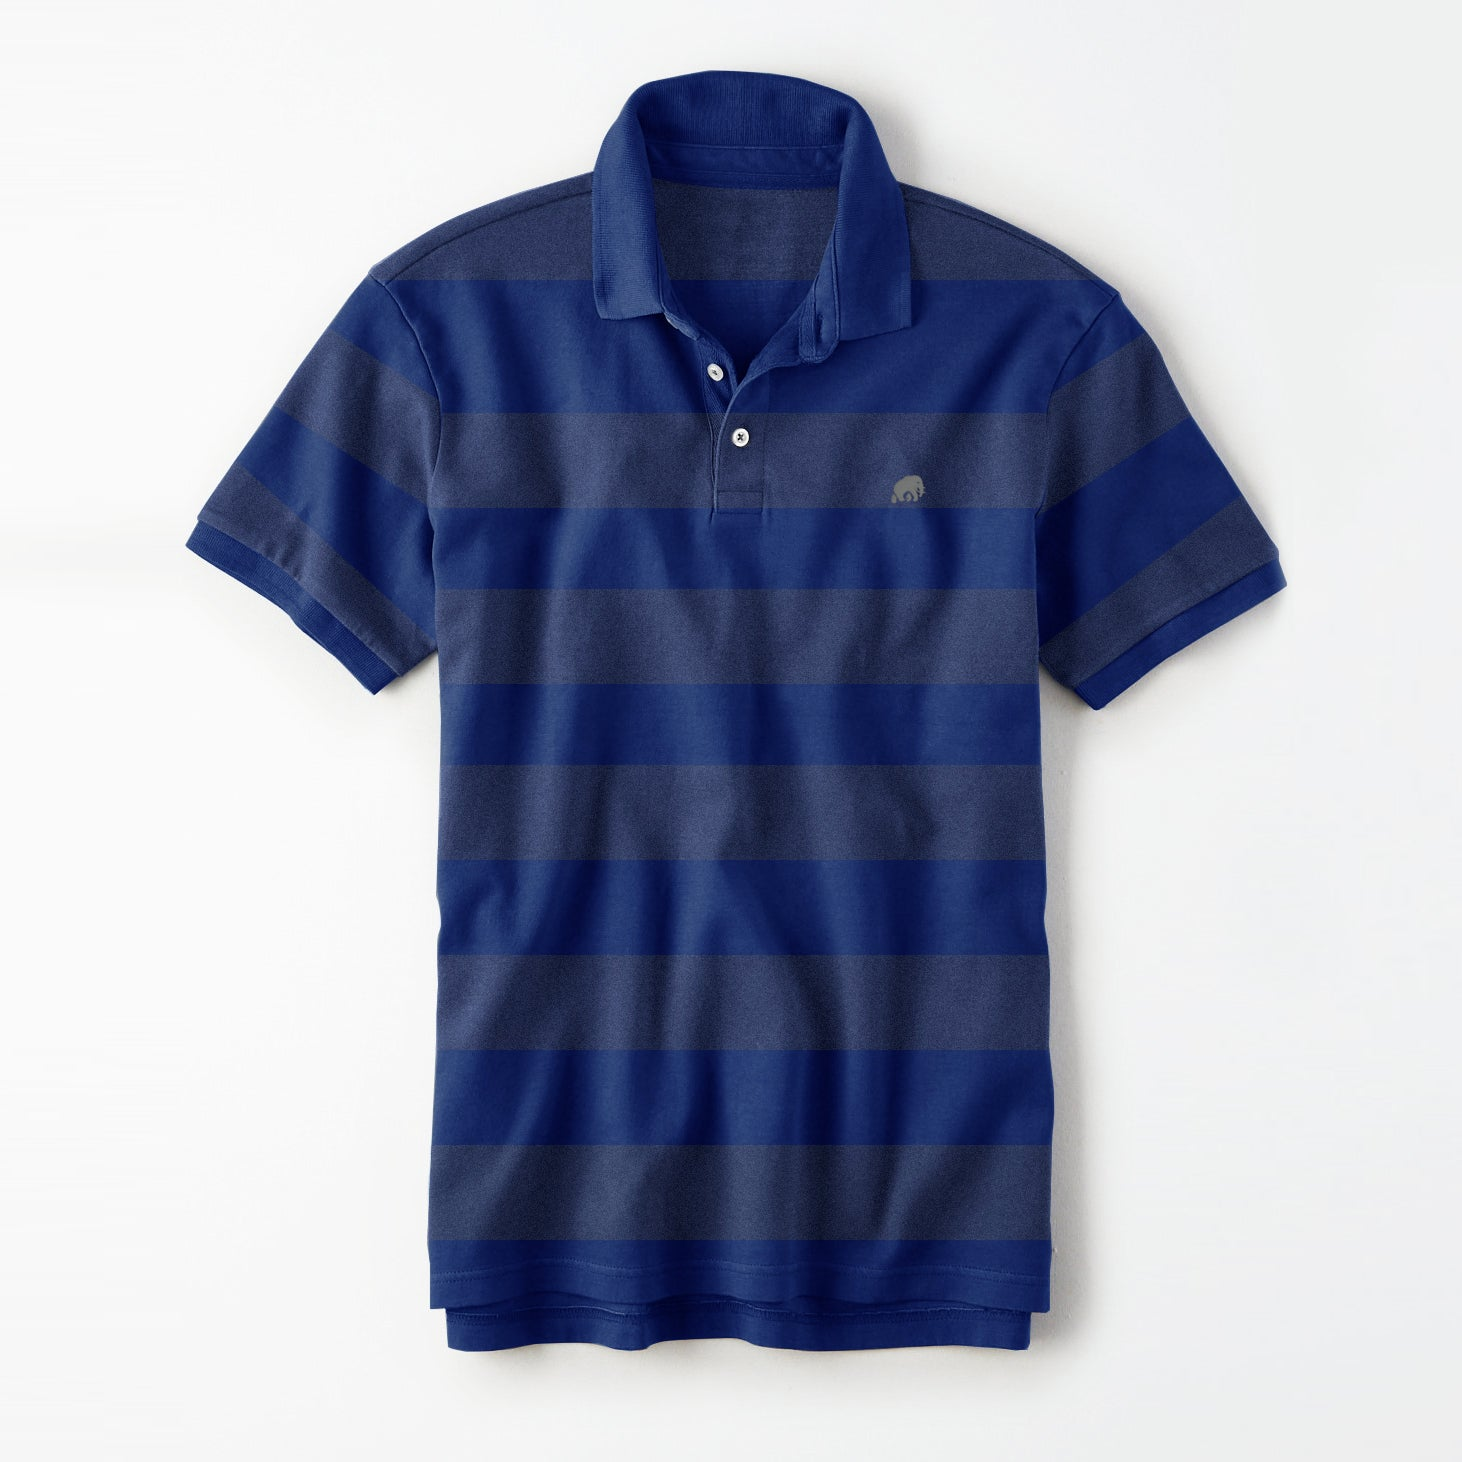 Banana Republic Short Sleeve P.Q Polo Shirt For Men-NA8114